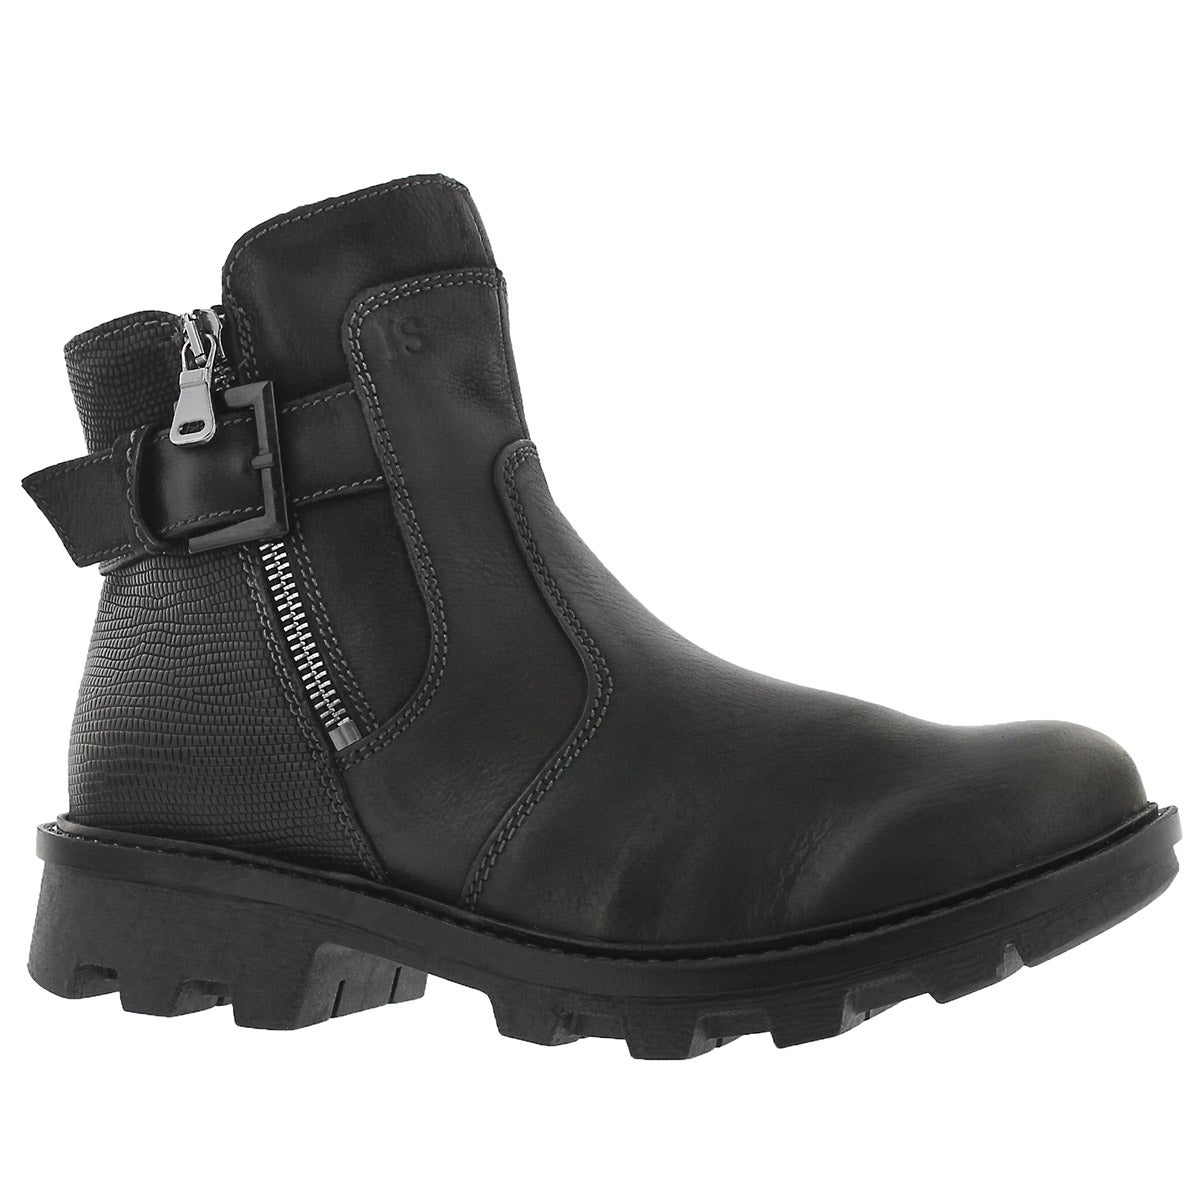 Women's MARILYN 05 schwarz side zip boots